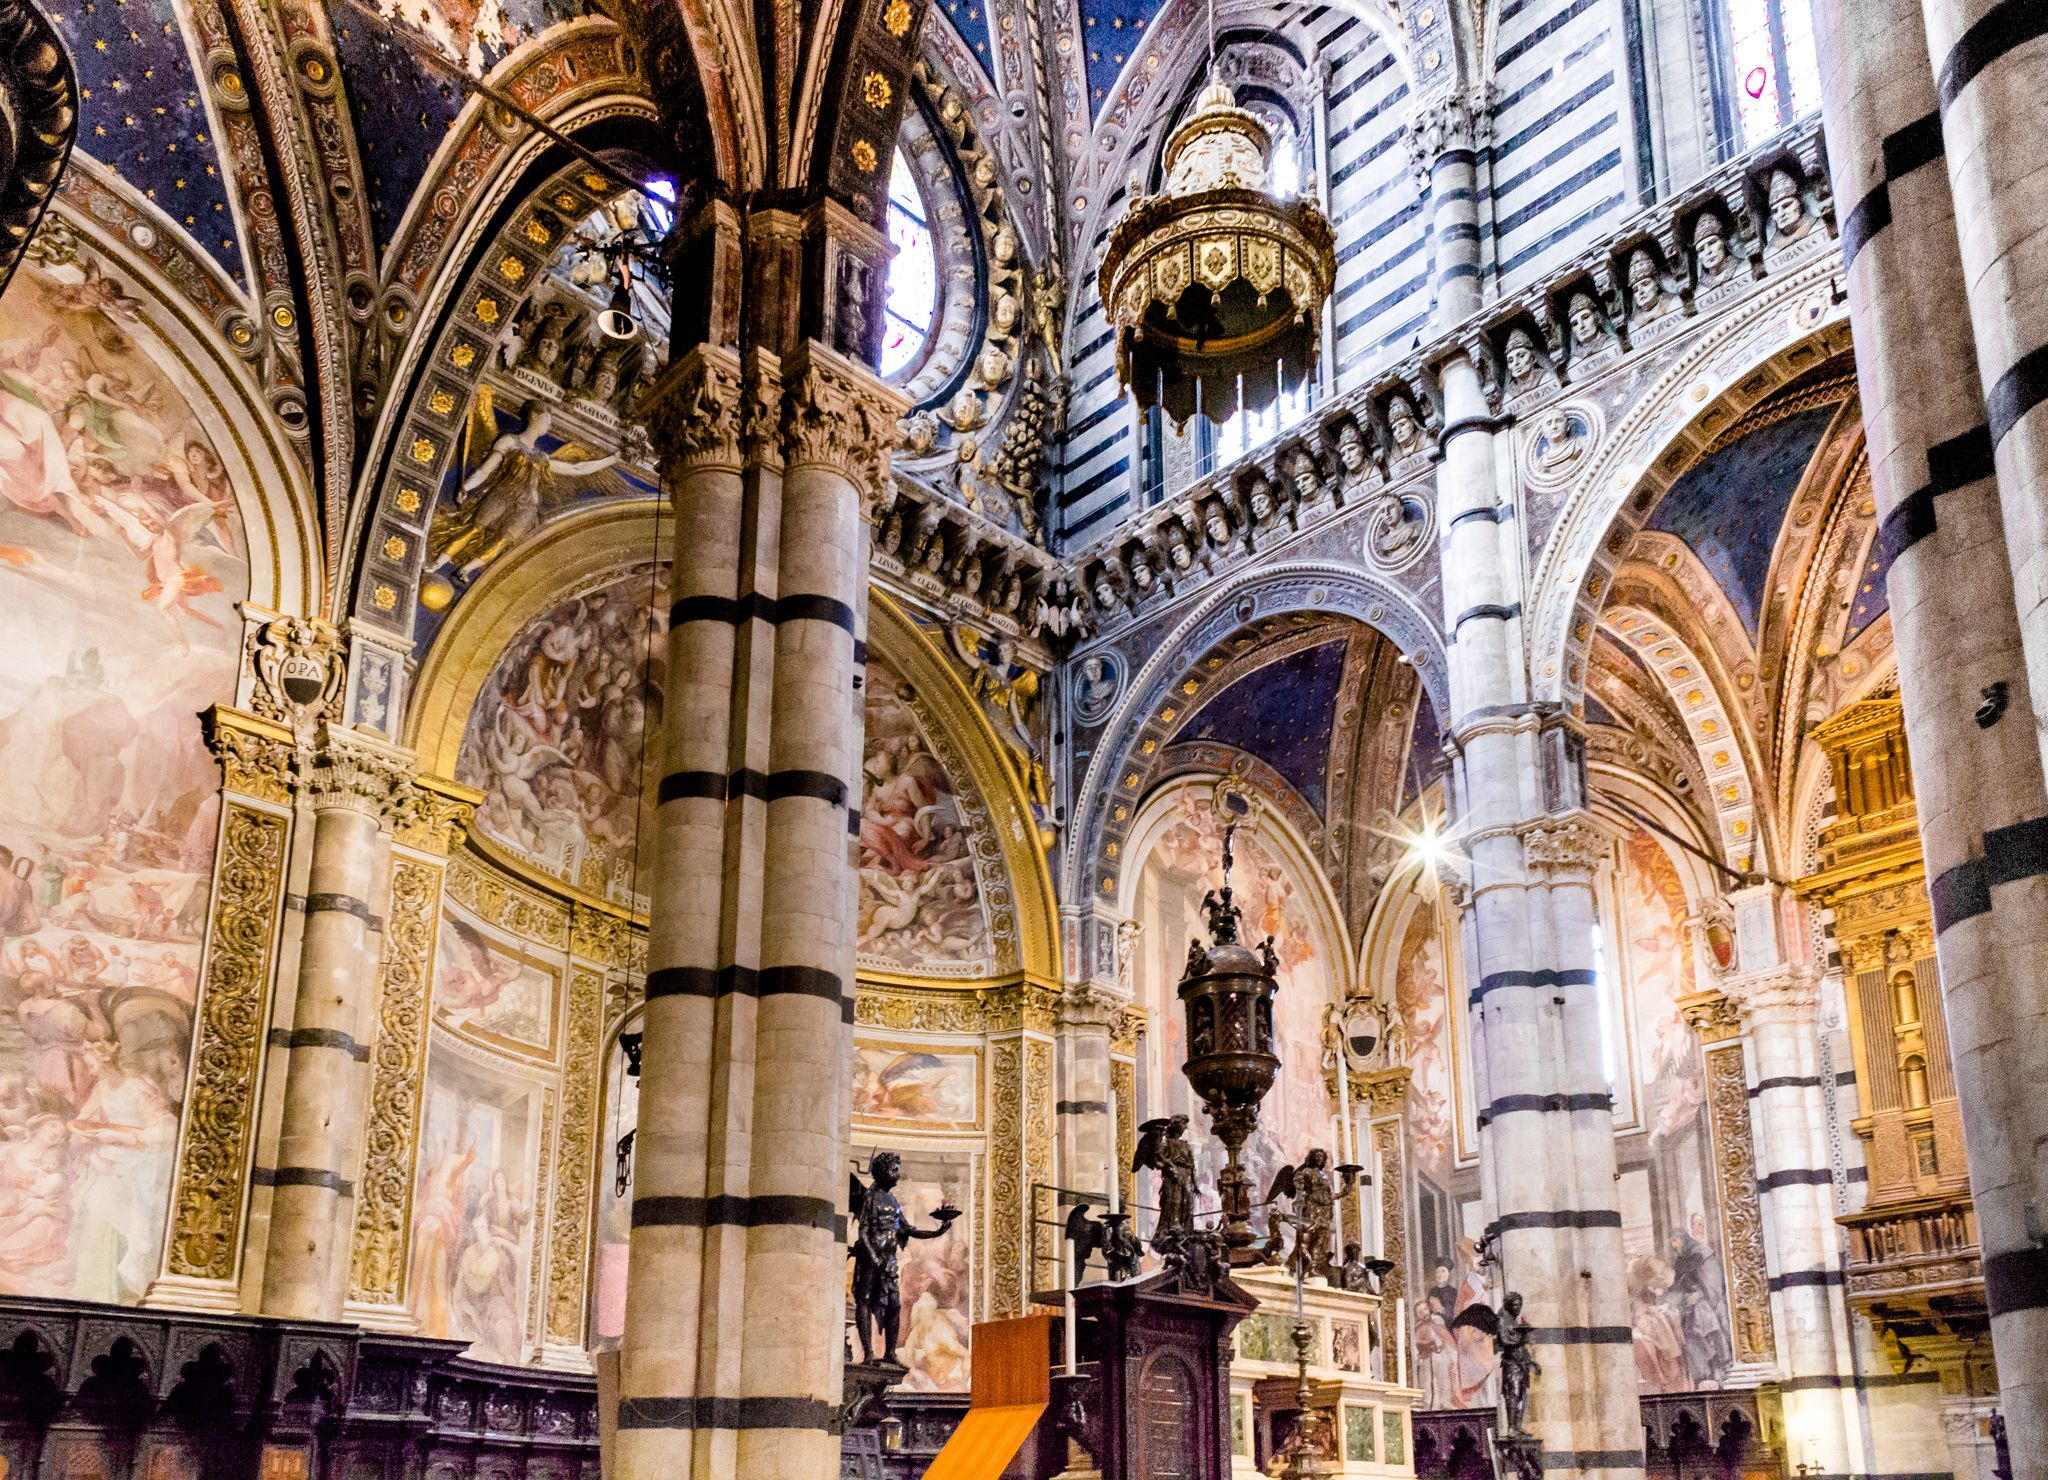 another view inside the Siena Cathedral